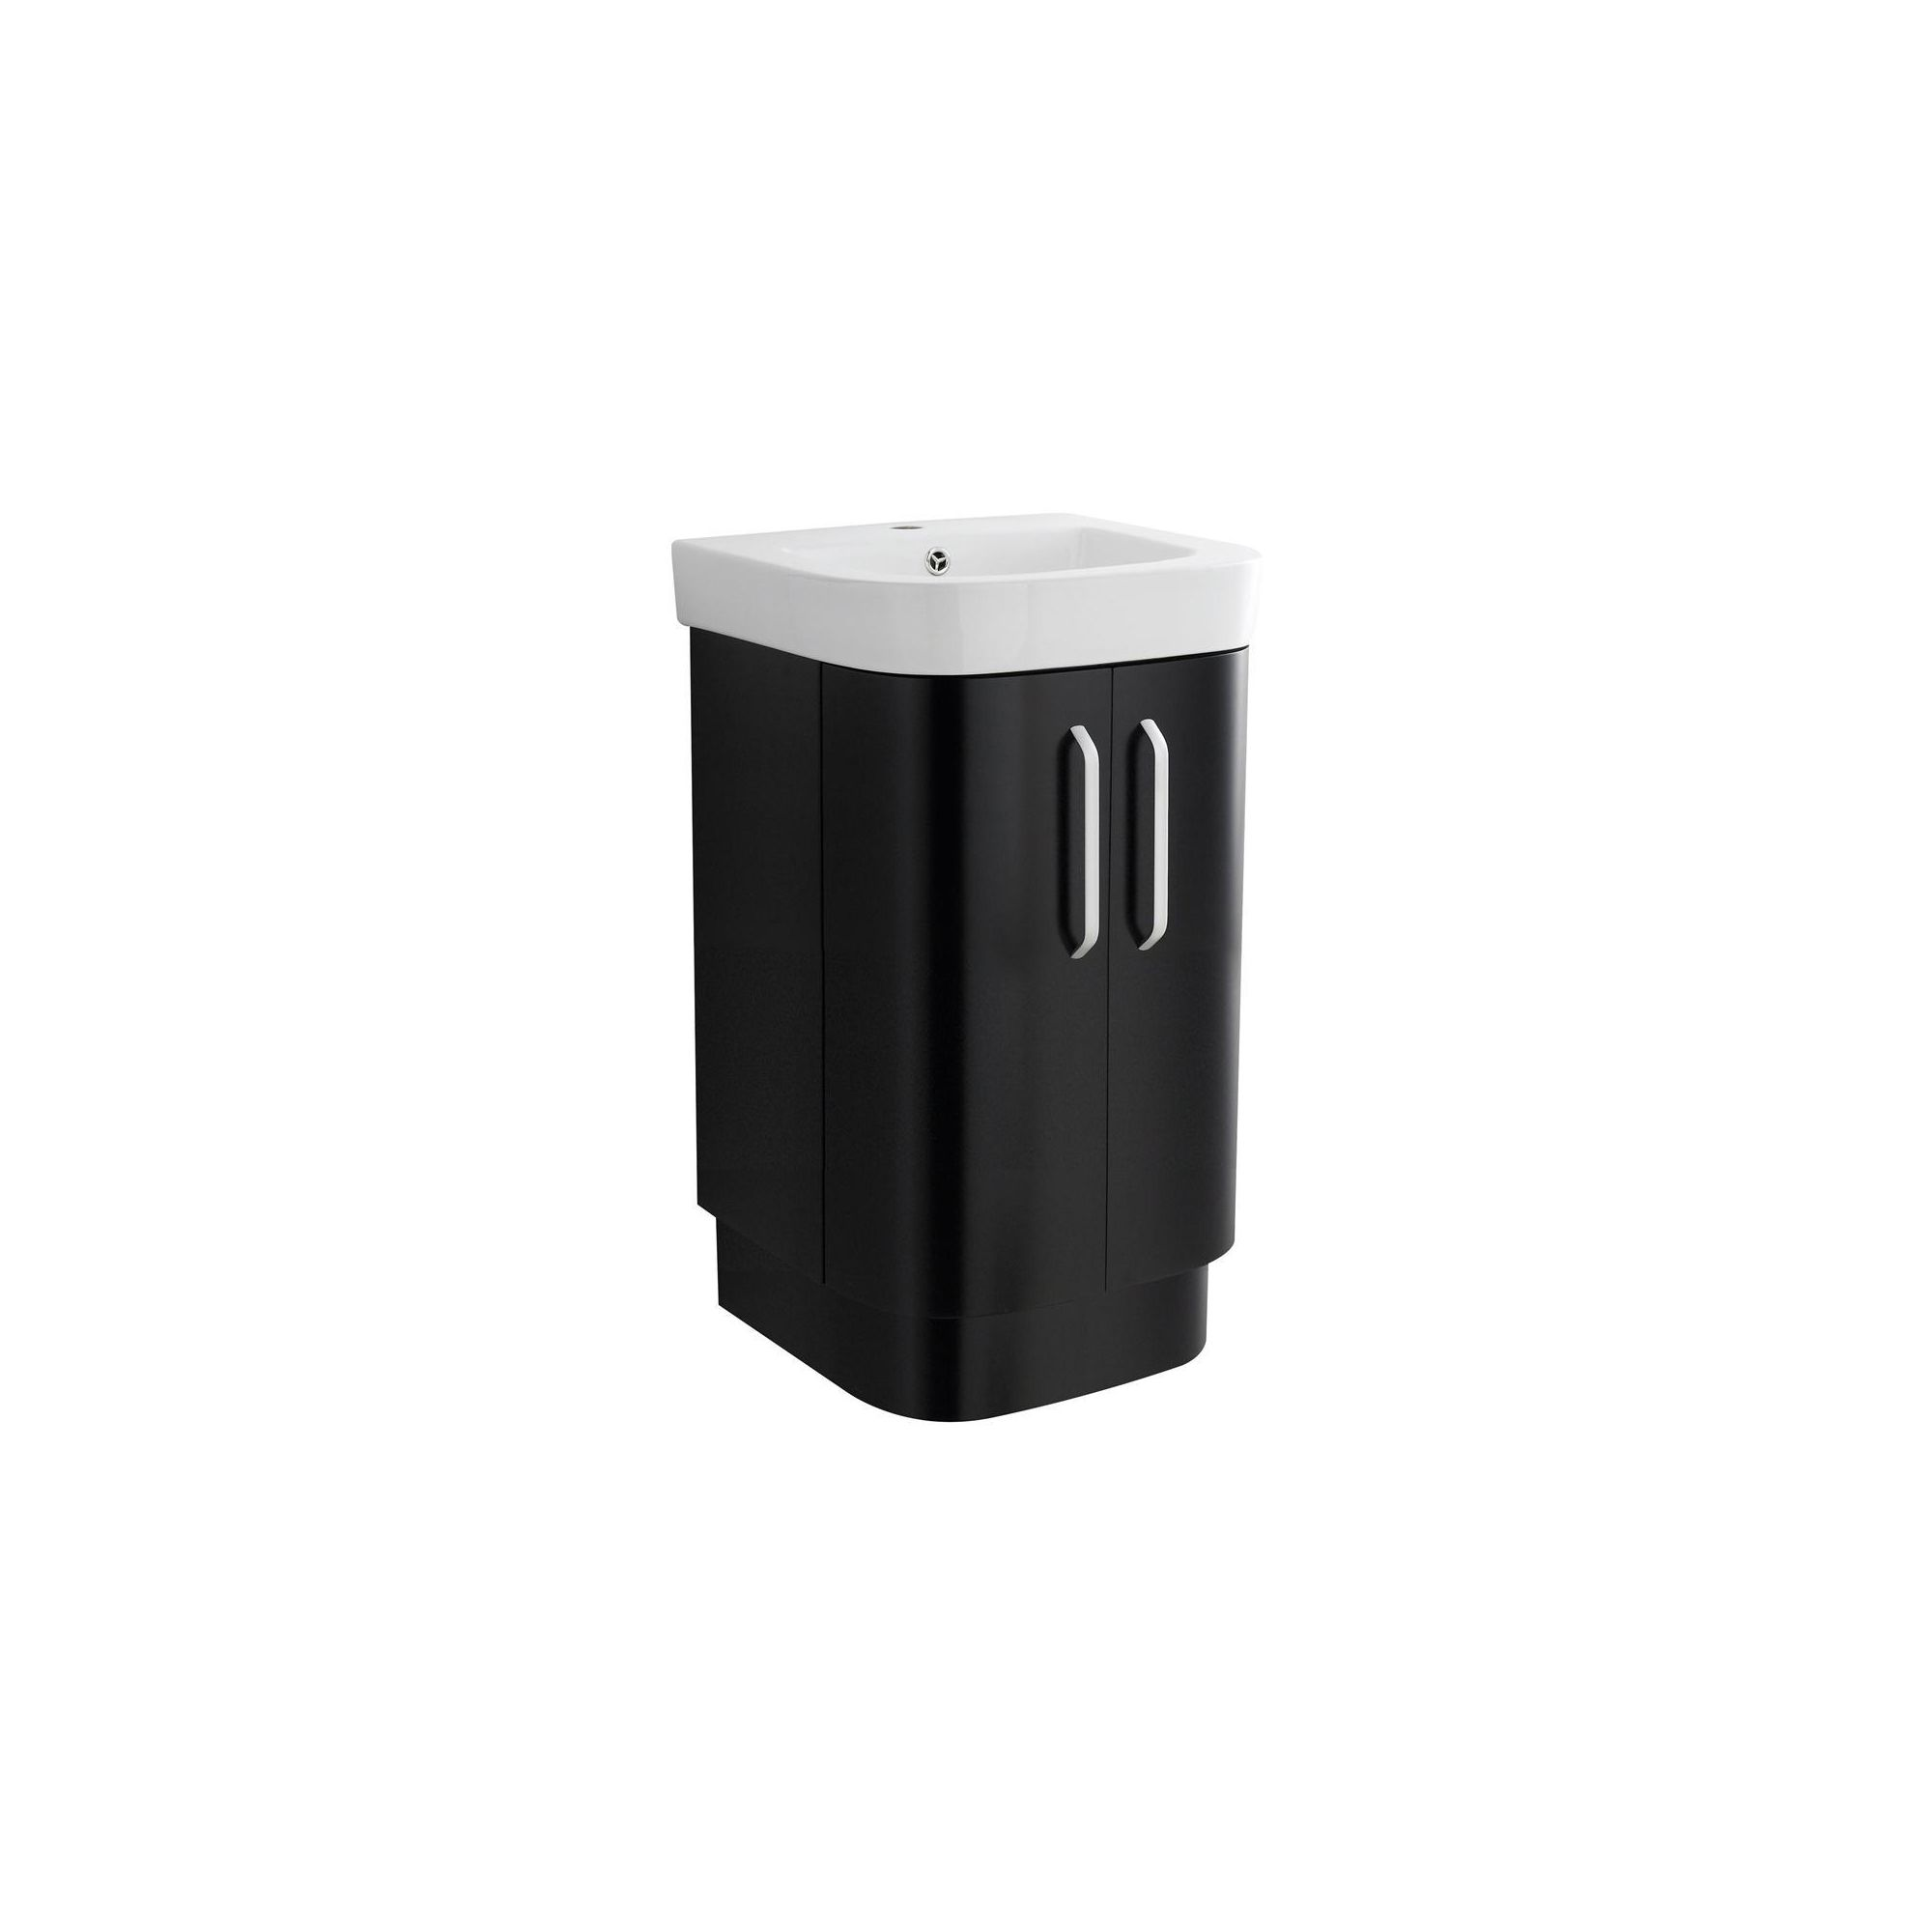 Ultra carlton black floor standing vanity unit and basin for Bathroom cabinets 500mm wide